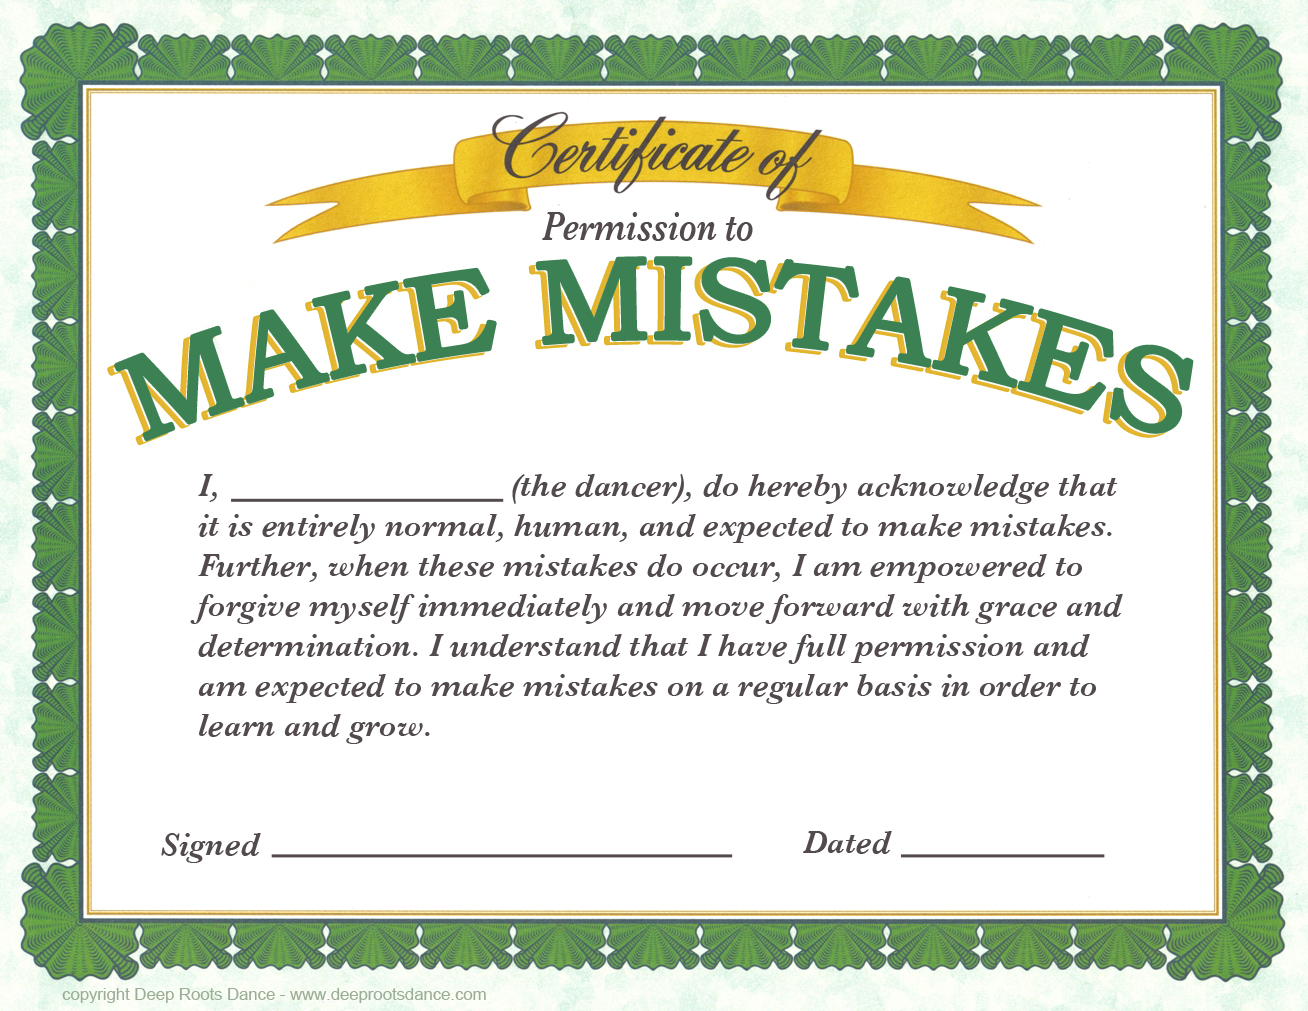 Awesome Quotes Move On Quotes Mistake Quotes Mistakes Quotes Forgive Quotes Quotes